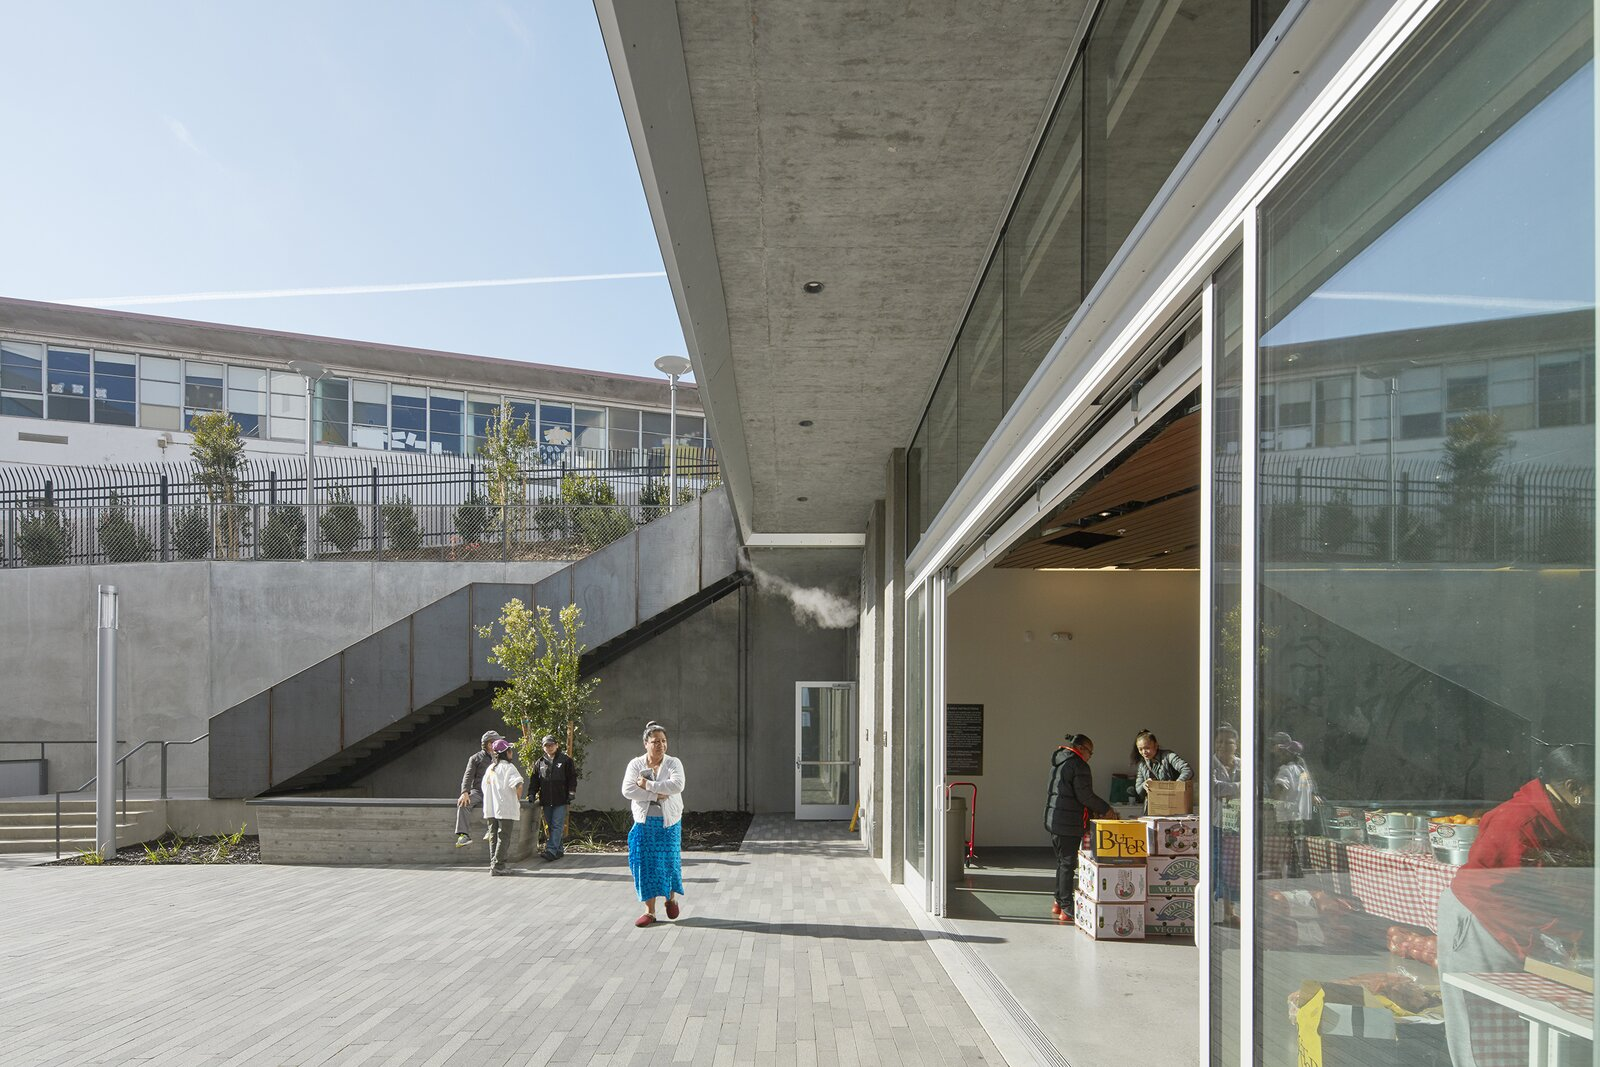 Photo 4 of 8 in 901 Fairfax Avenue by David Baker Architects